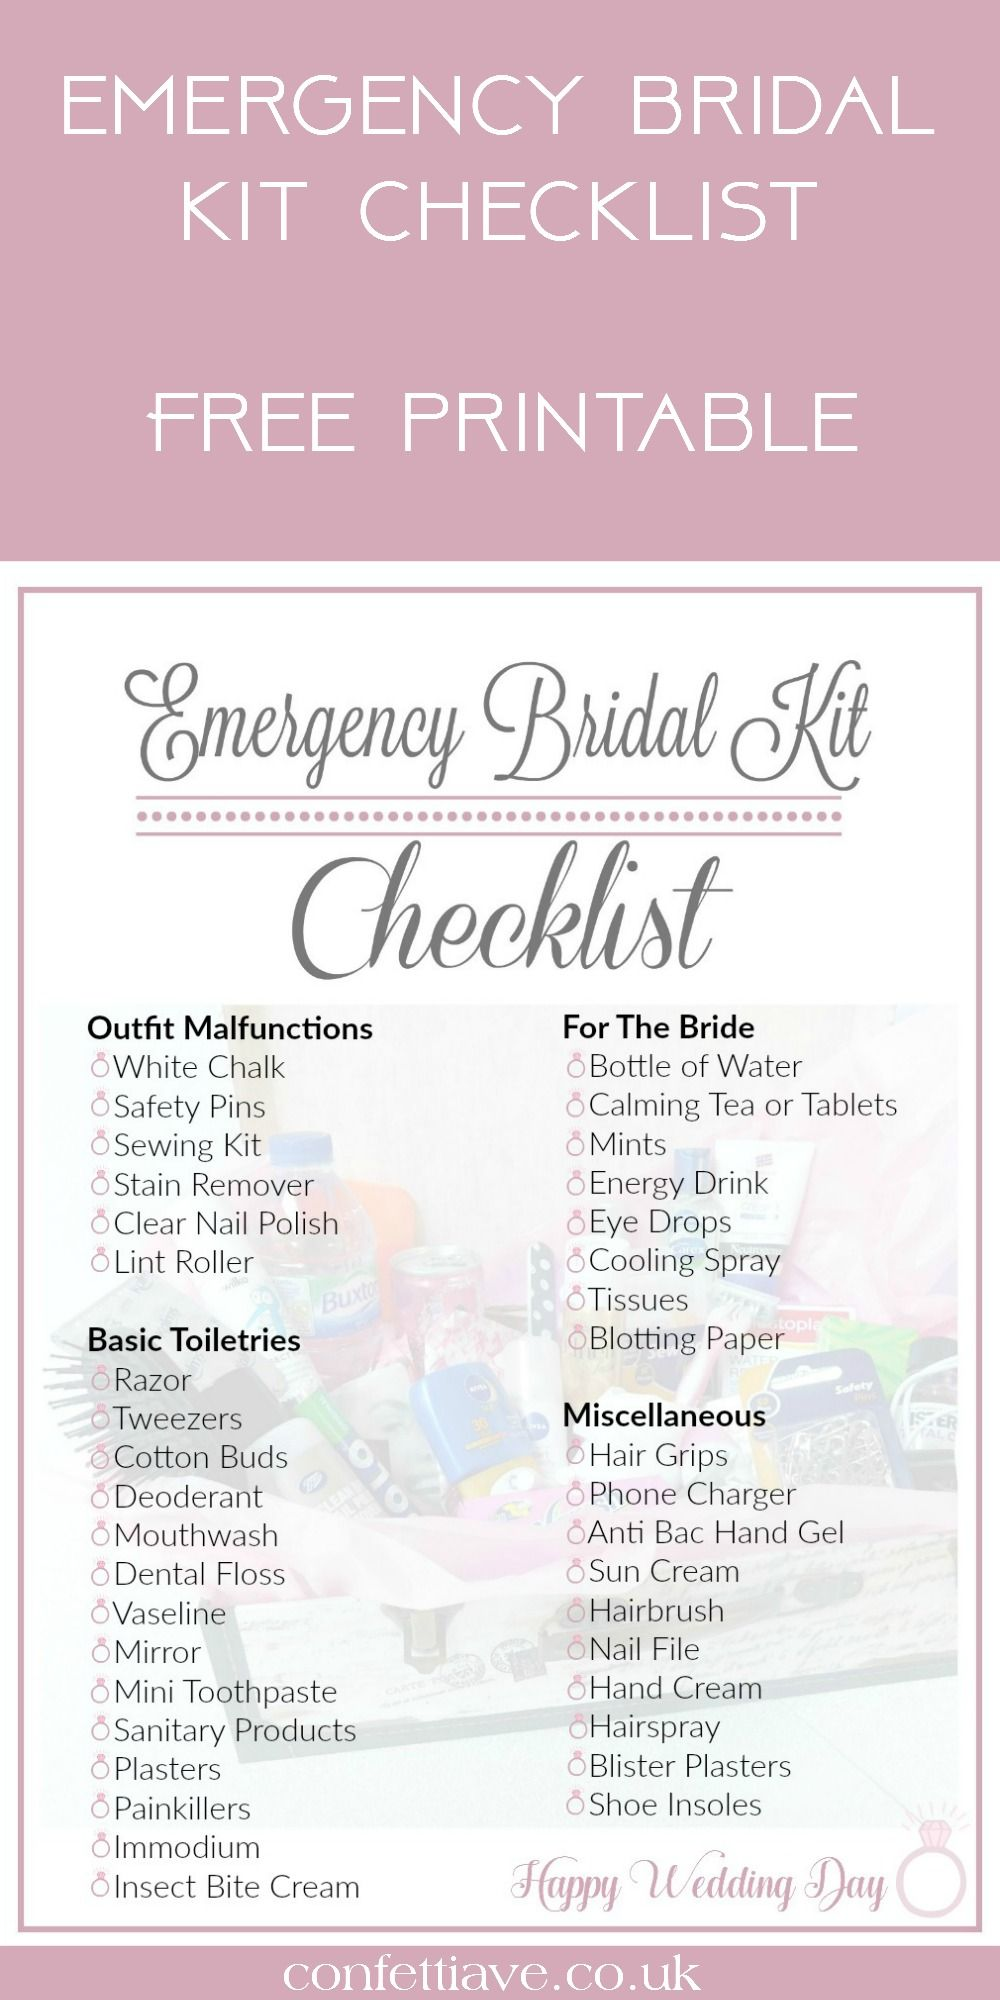 Emergency Bridal Kit Checklist Wedding Tools Http Confettiave Co Uk